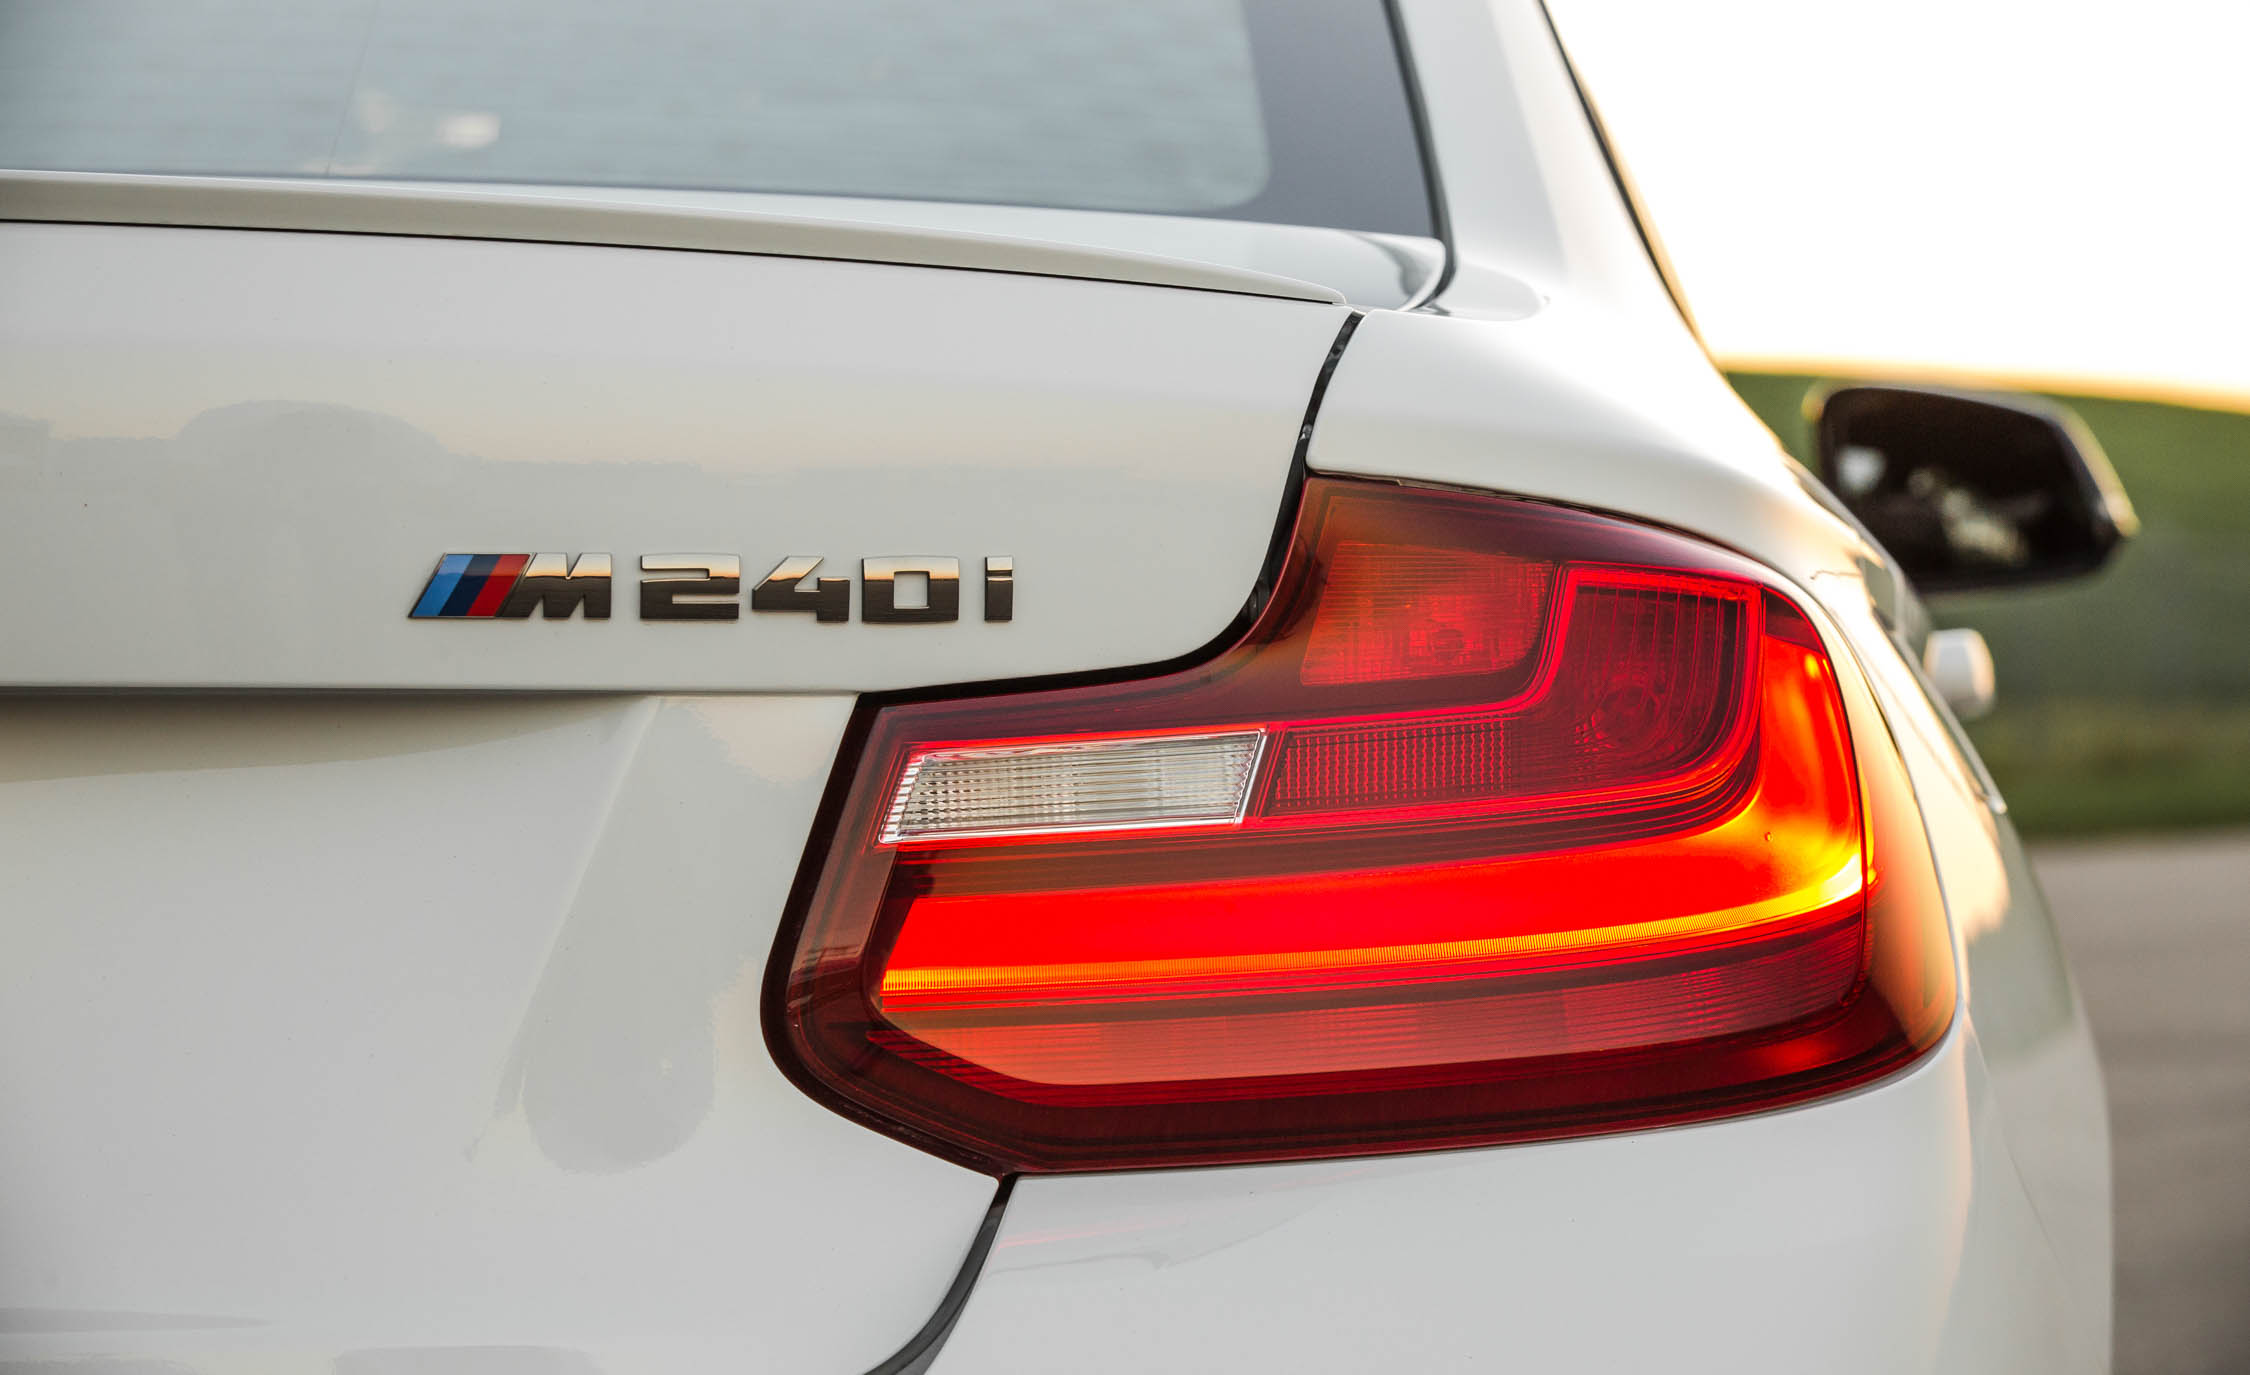 2017 BMW M240i Coupe Automatic Exterior View Rear Emblem (Photo 15 of 36)